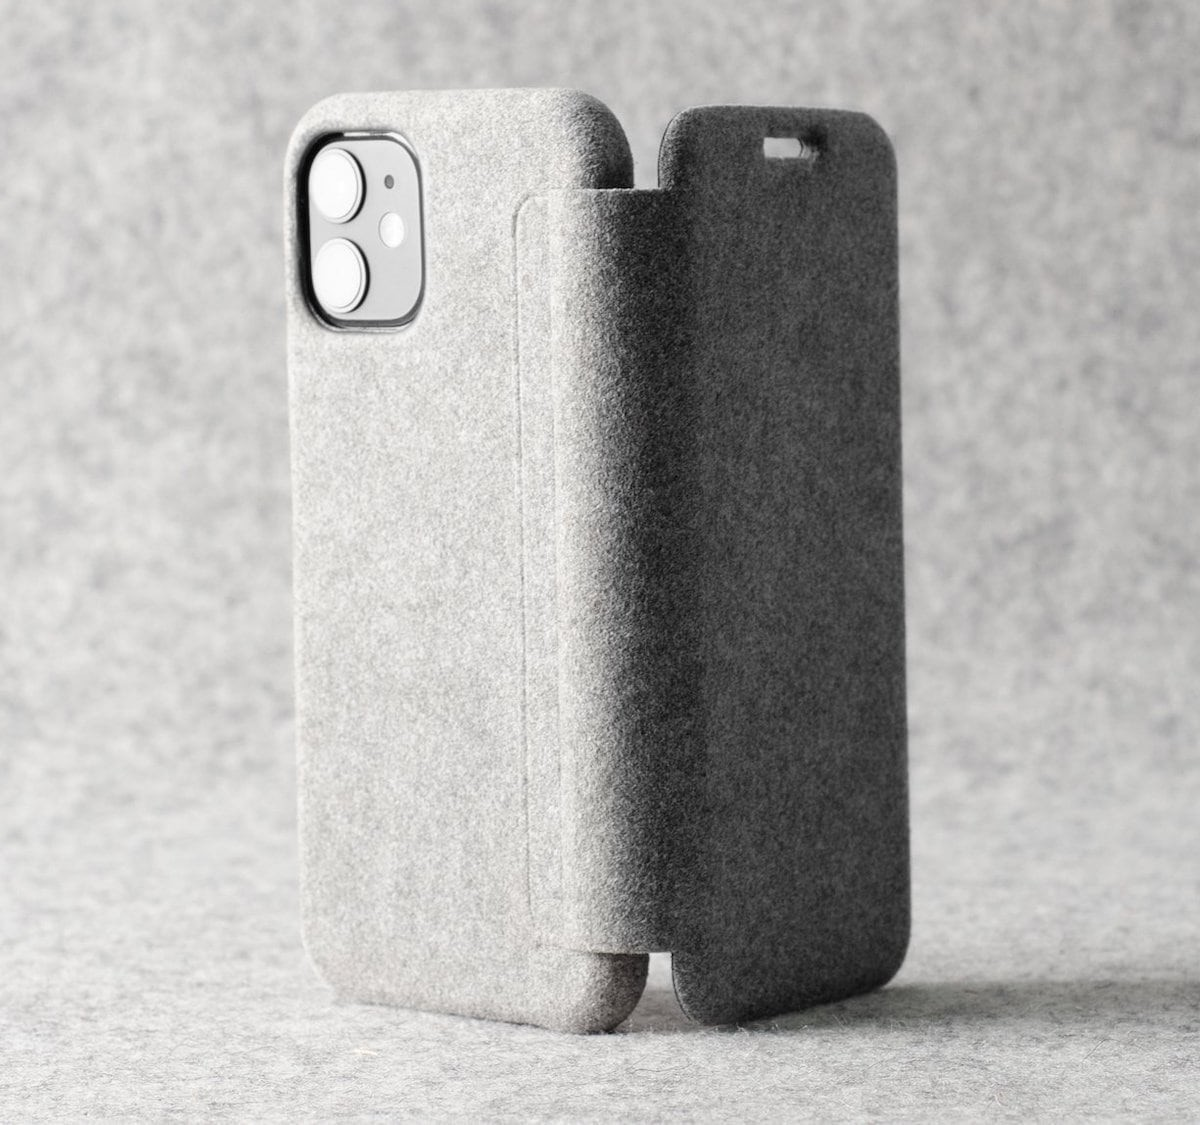 hardgraft Fuzzy iPhone Closed Case Full Smartphone Cover gives you an escape from the world